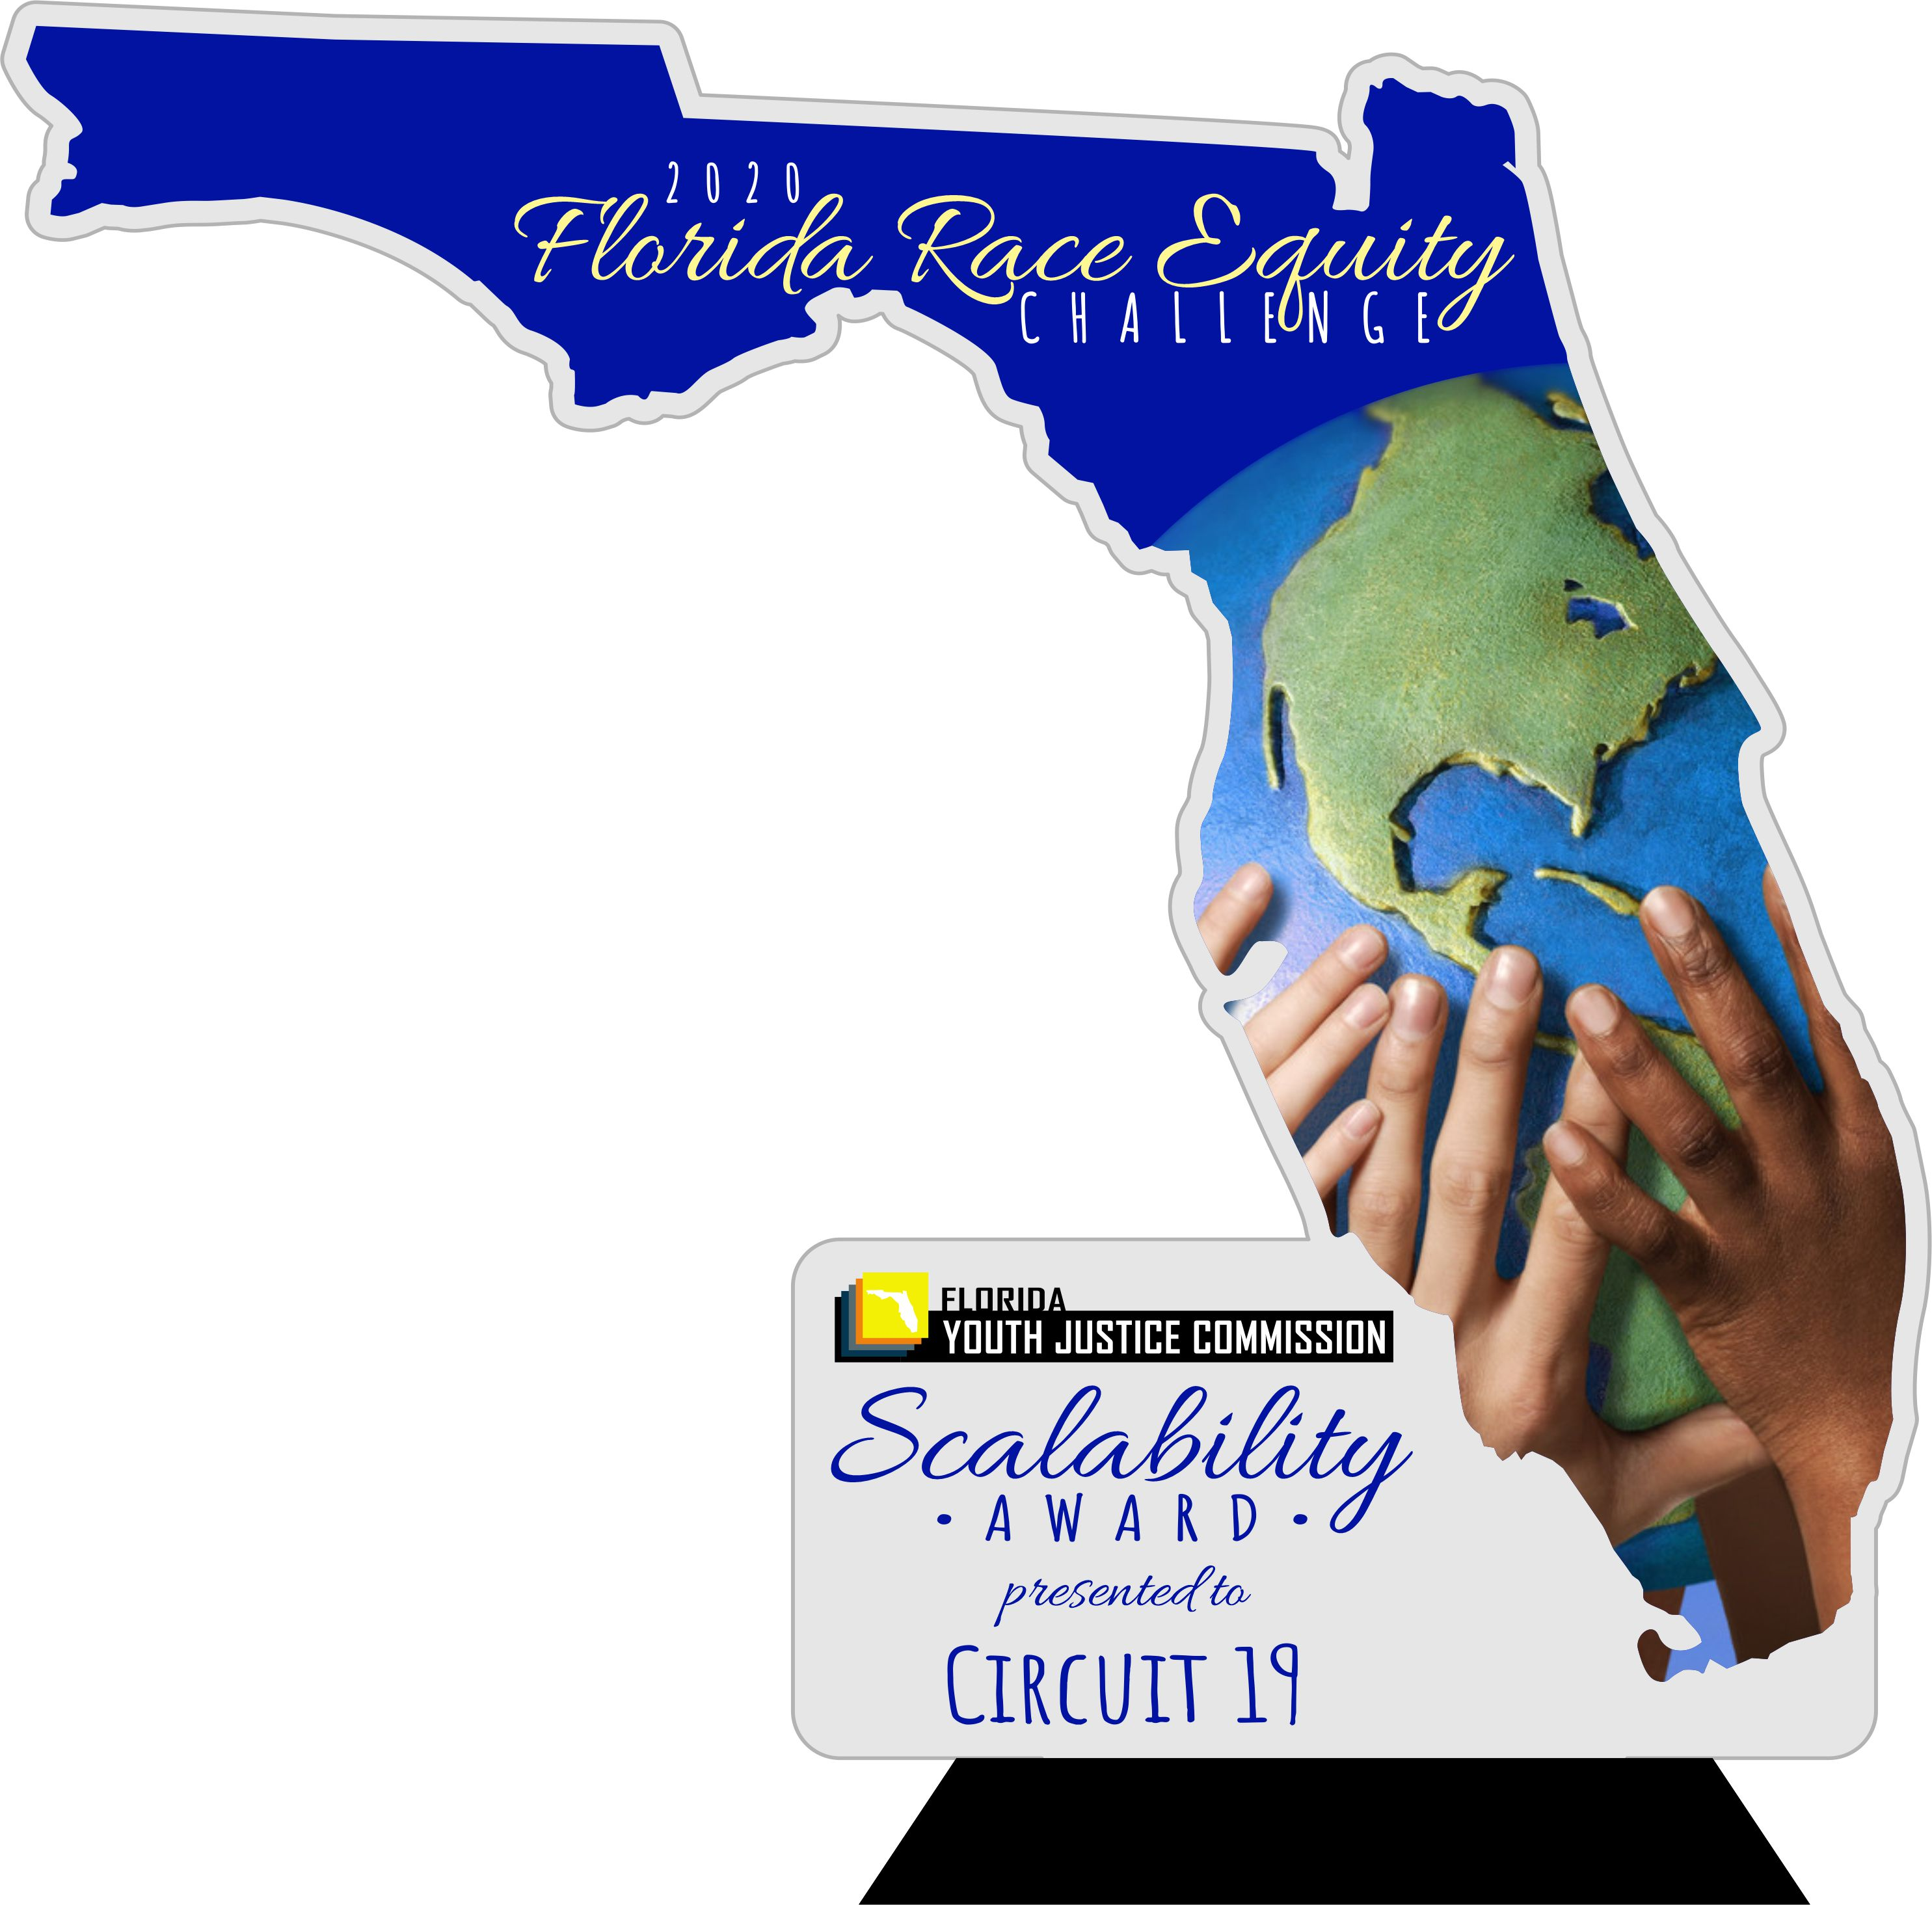 Click here to view the award winning submission Scalability-Award-C19